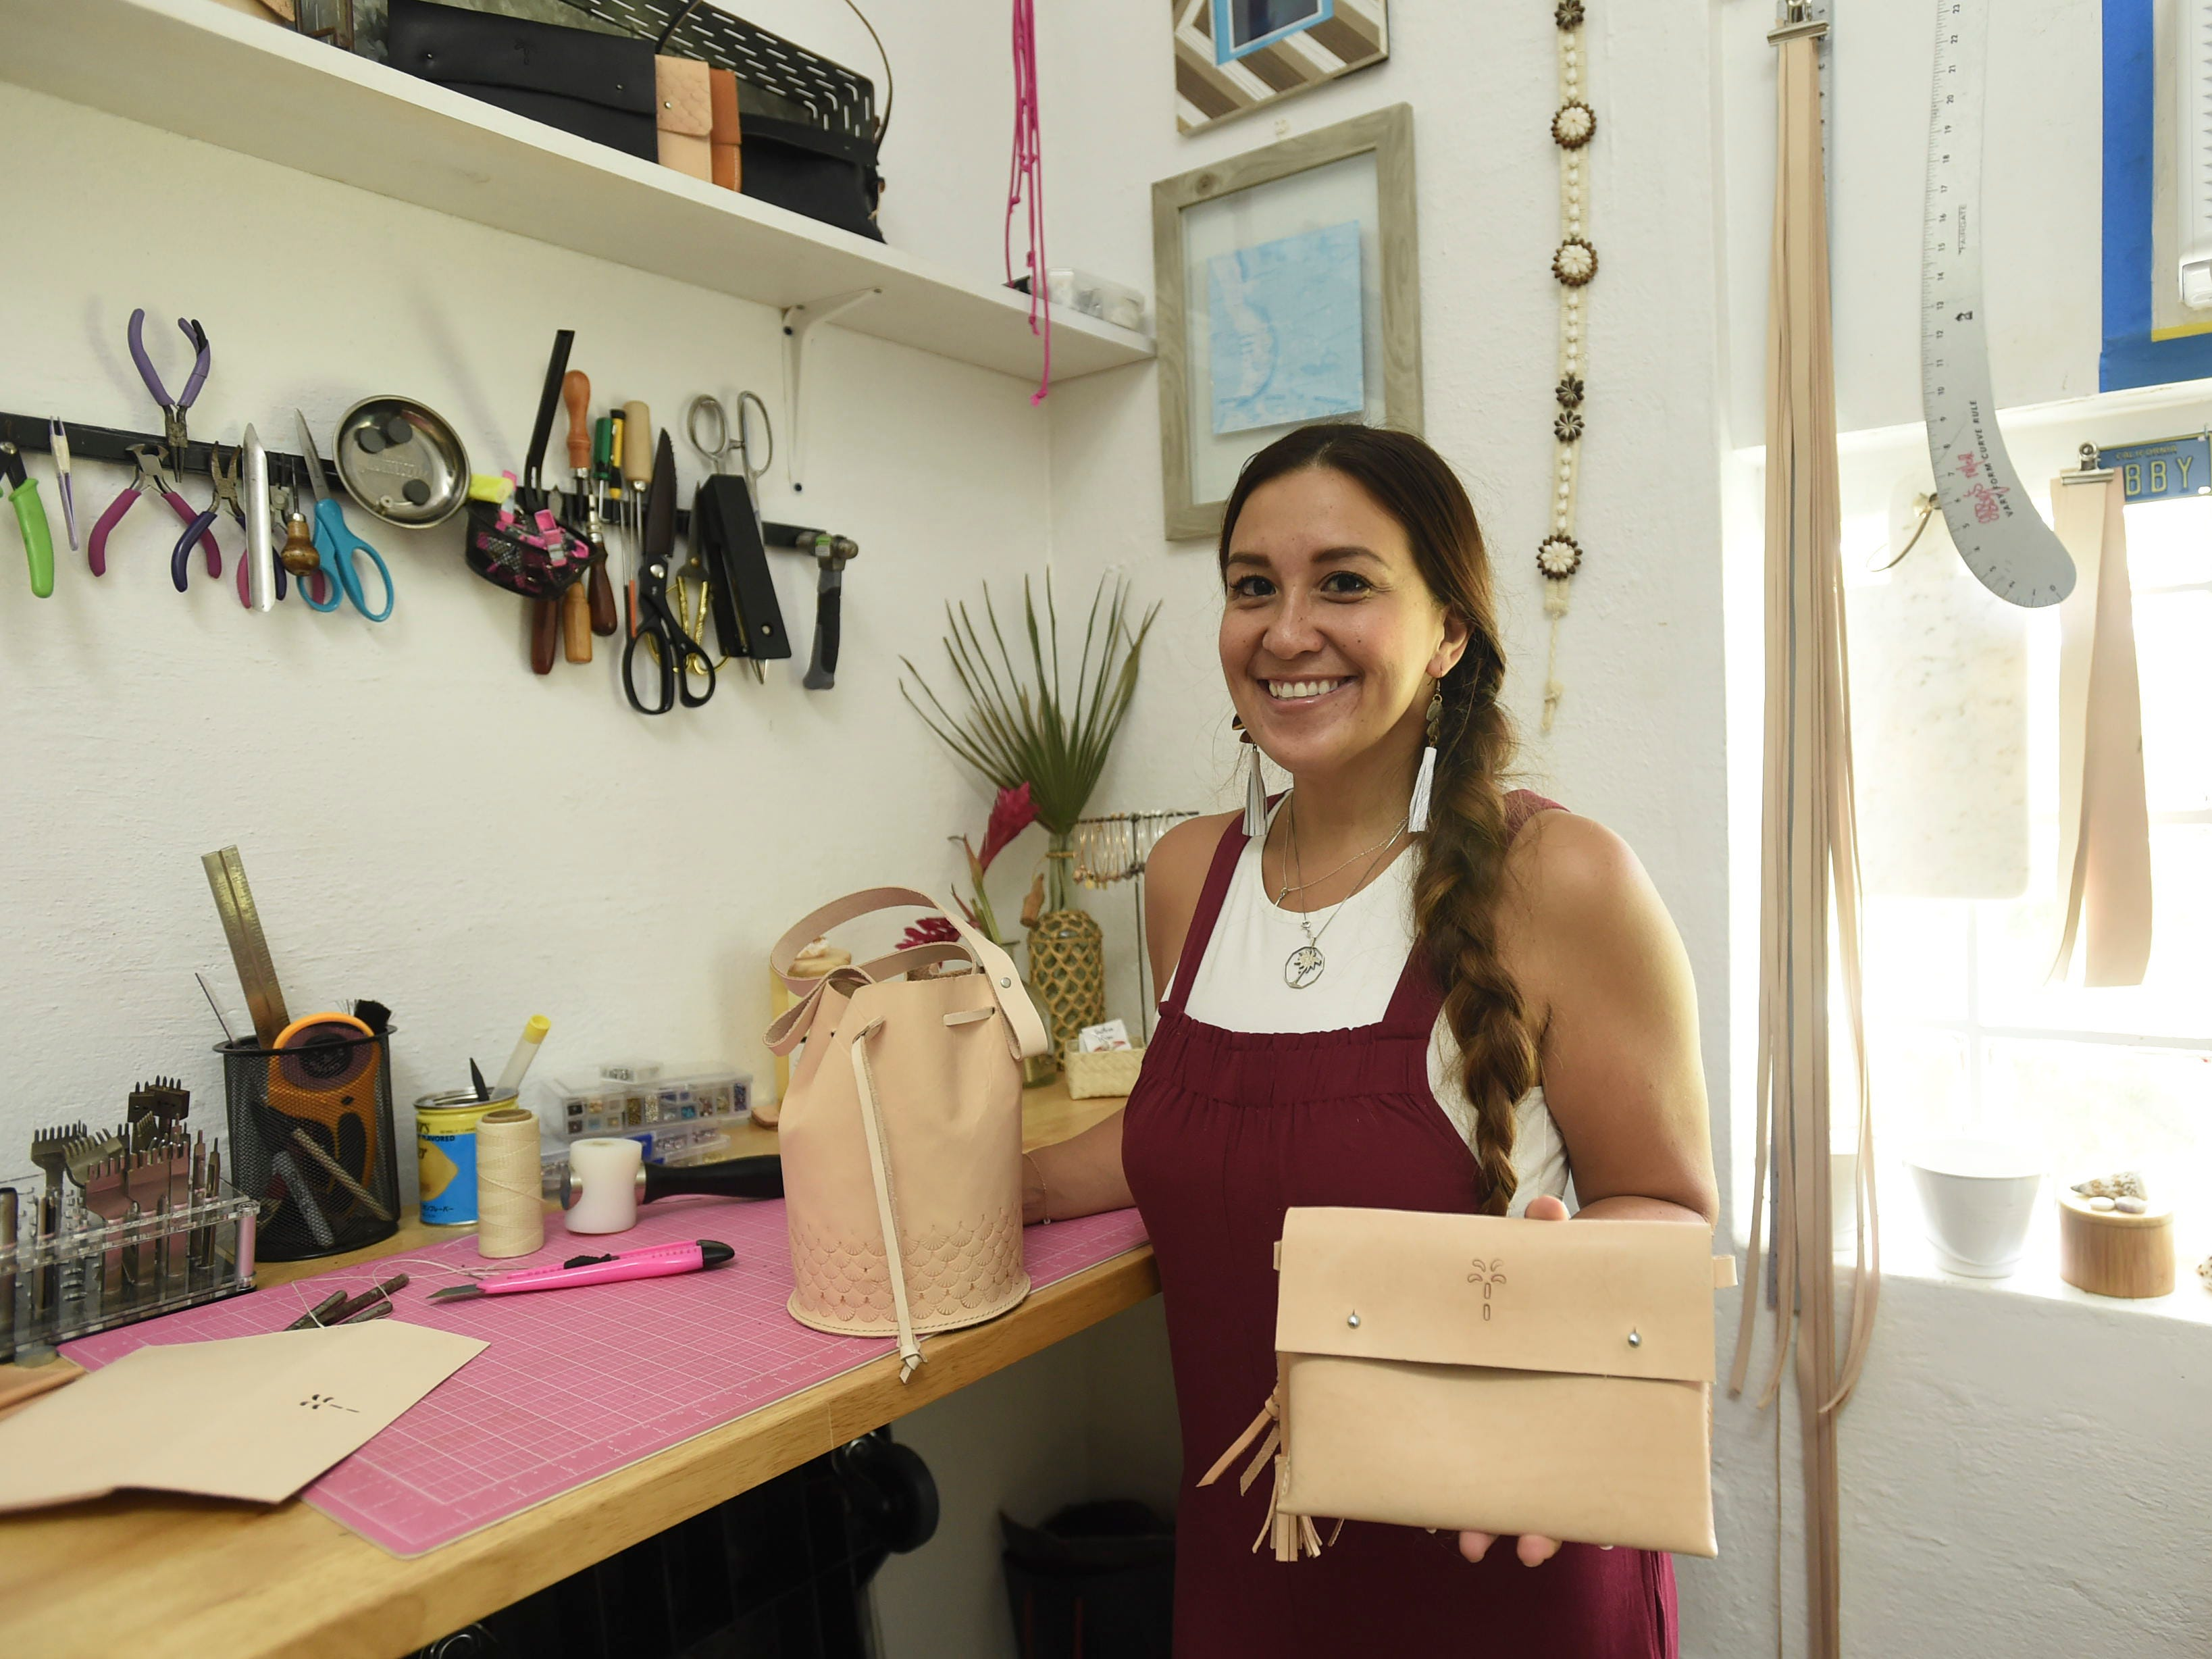 The Blue Latitude owner Abby Crain displays some of her handmade products at her workstation in Merizo on Oct. 2, 2018.